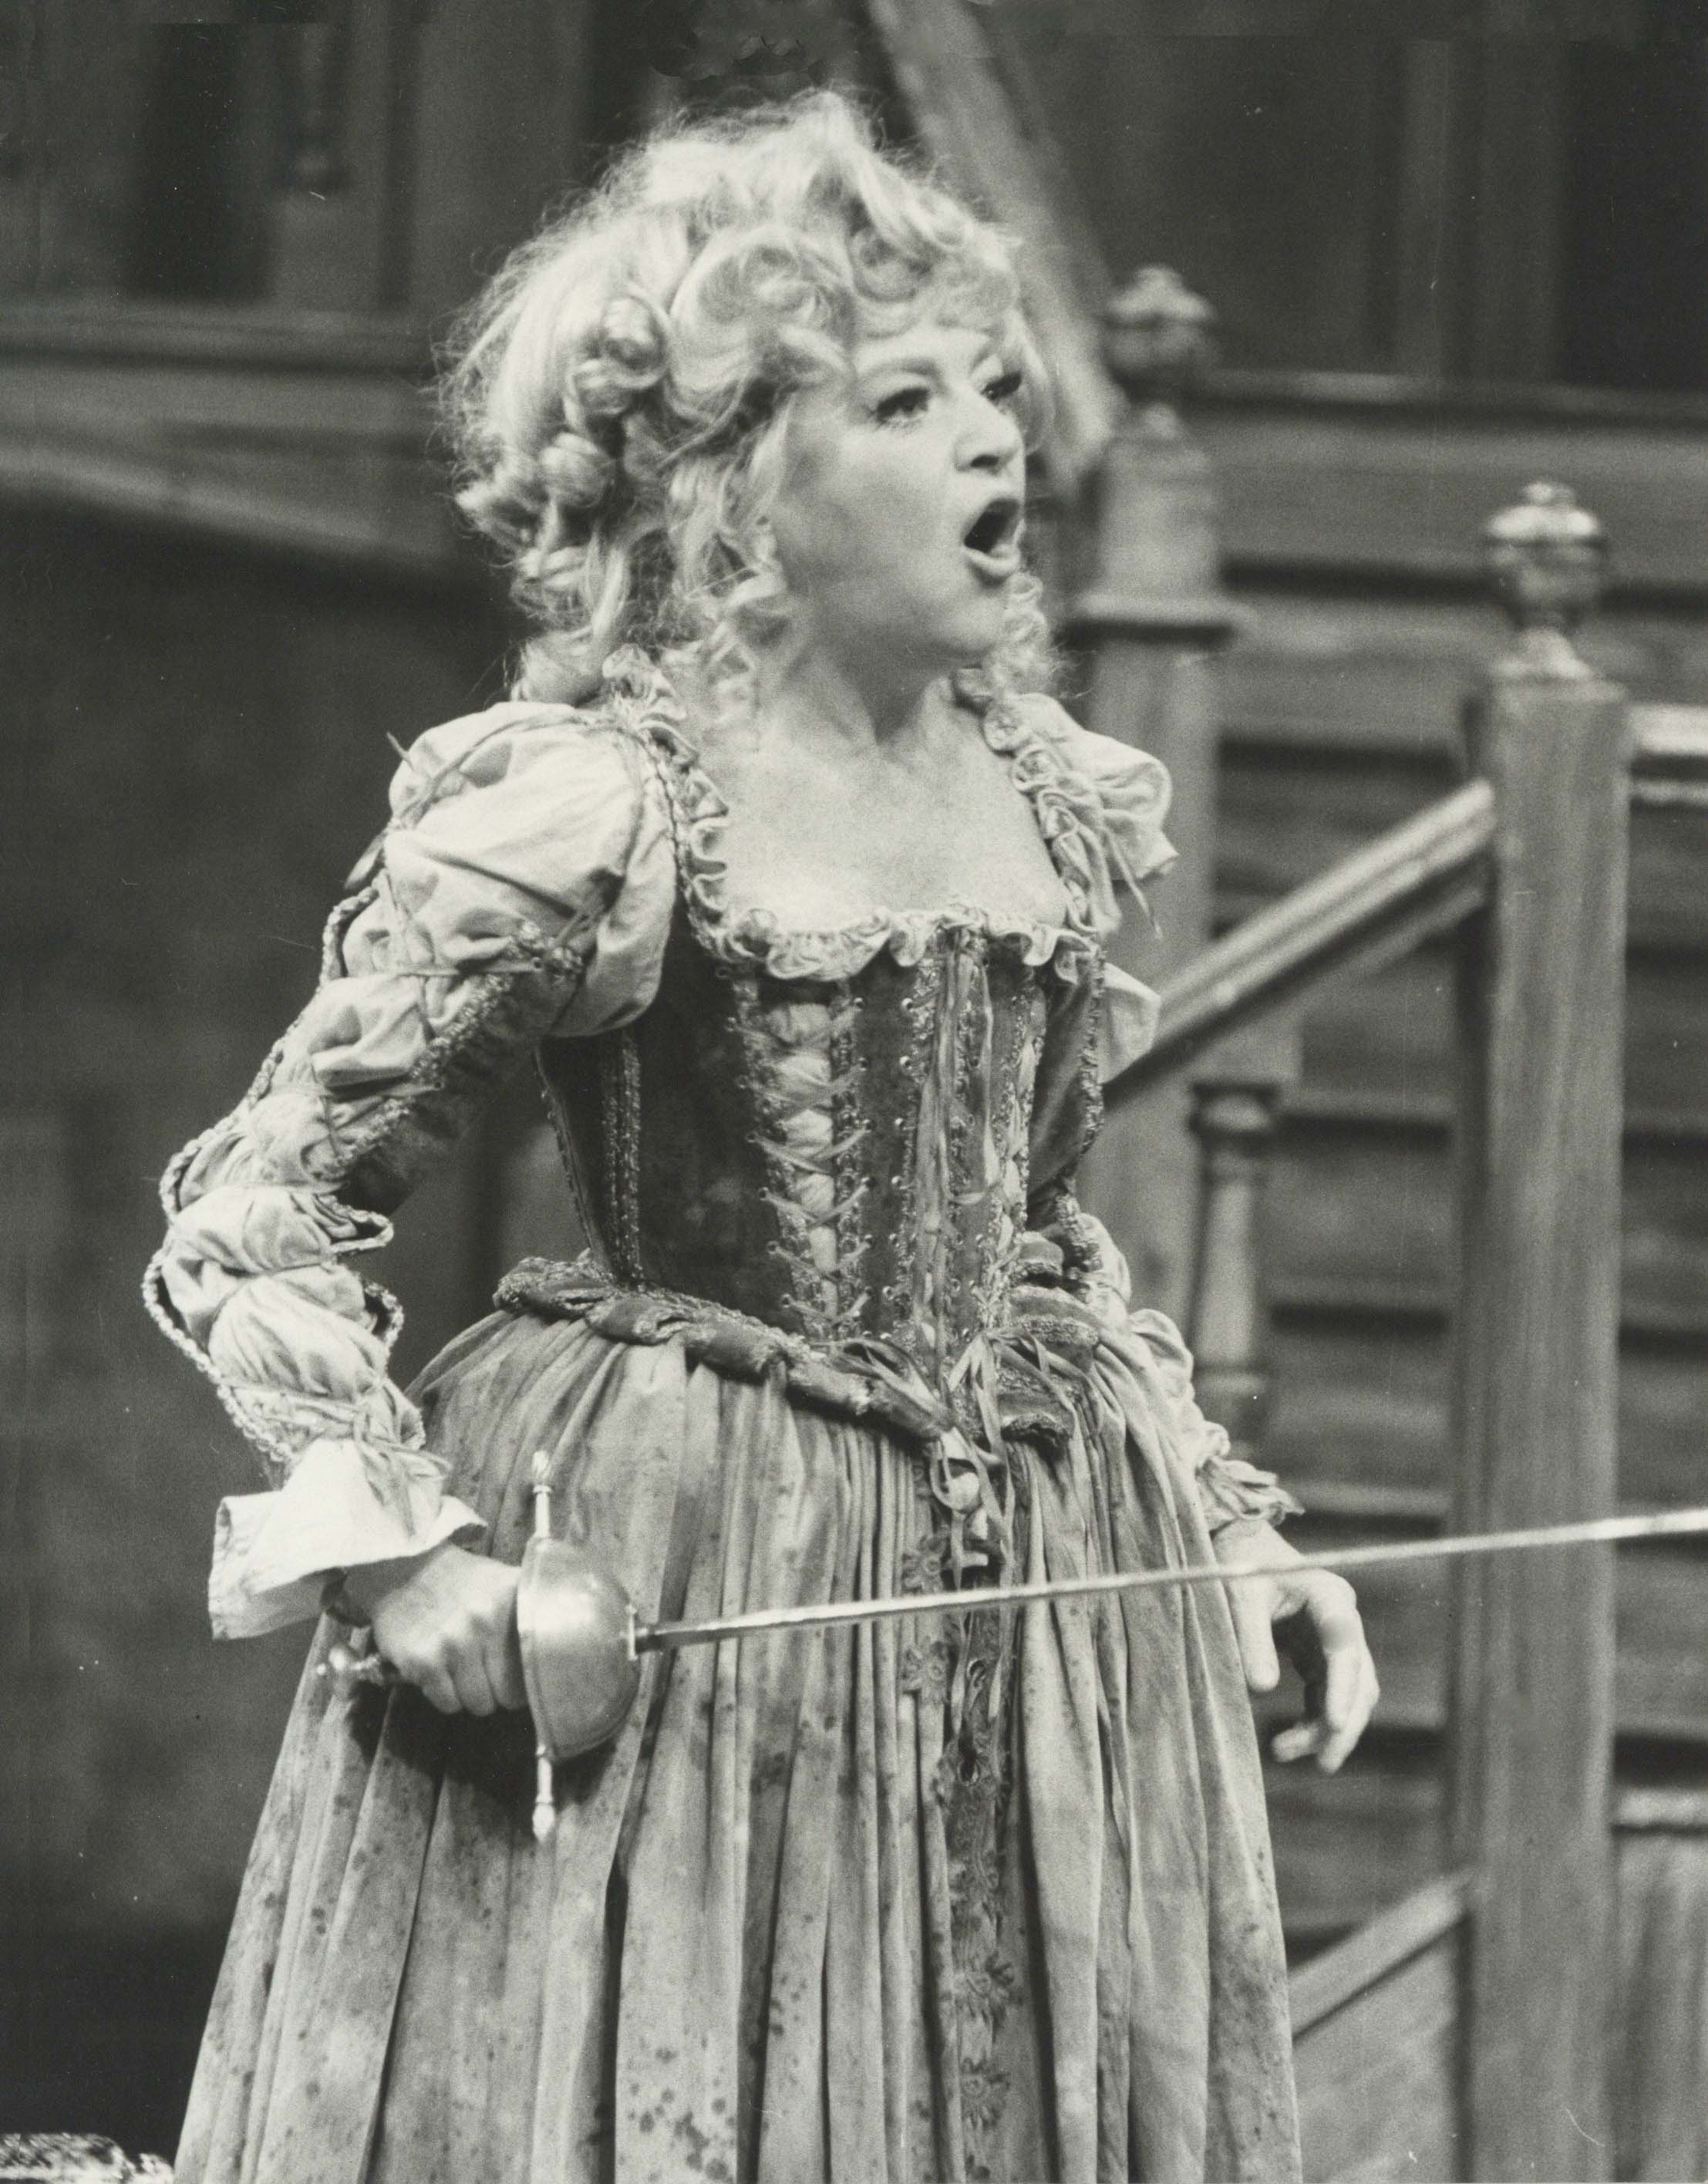 Production photograph - The Alchemist - Dora Bryan - Photographer John Timbers - 1970